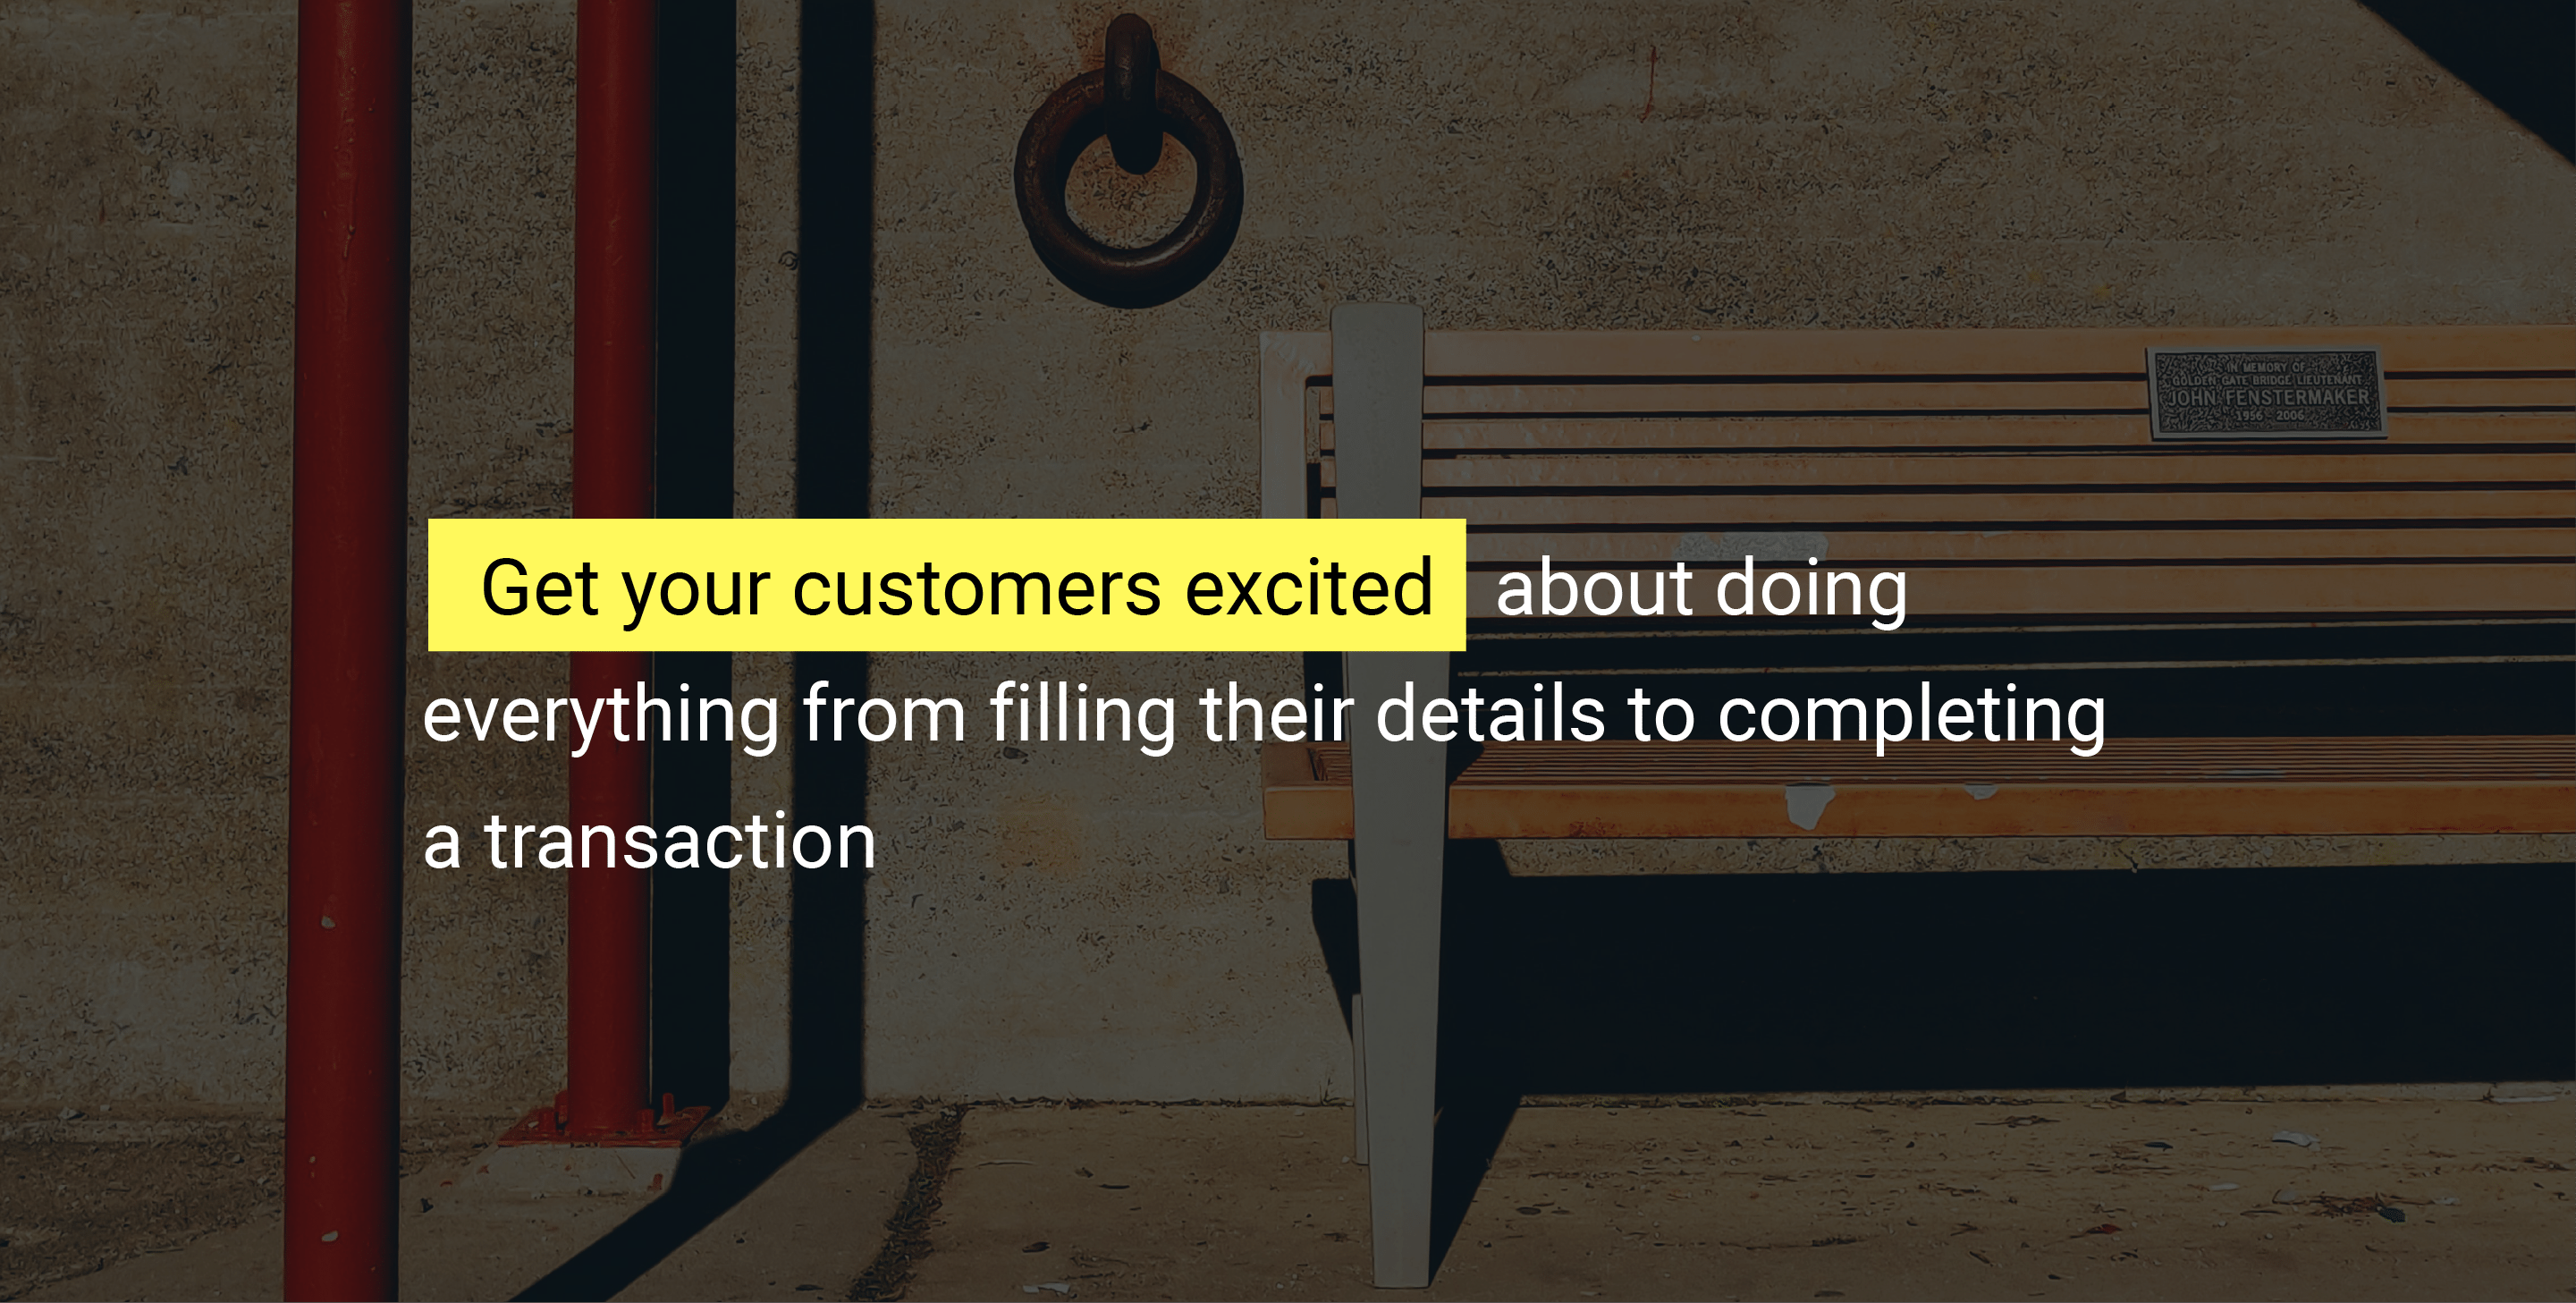 Get your customers excited about doing everything from filling their details to completing a transaction.